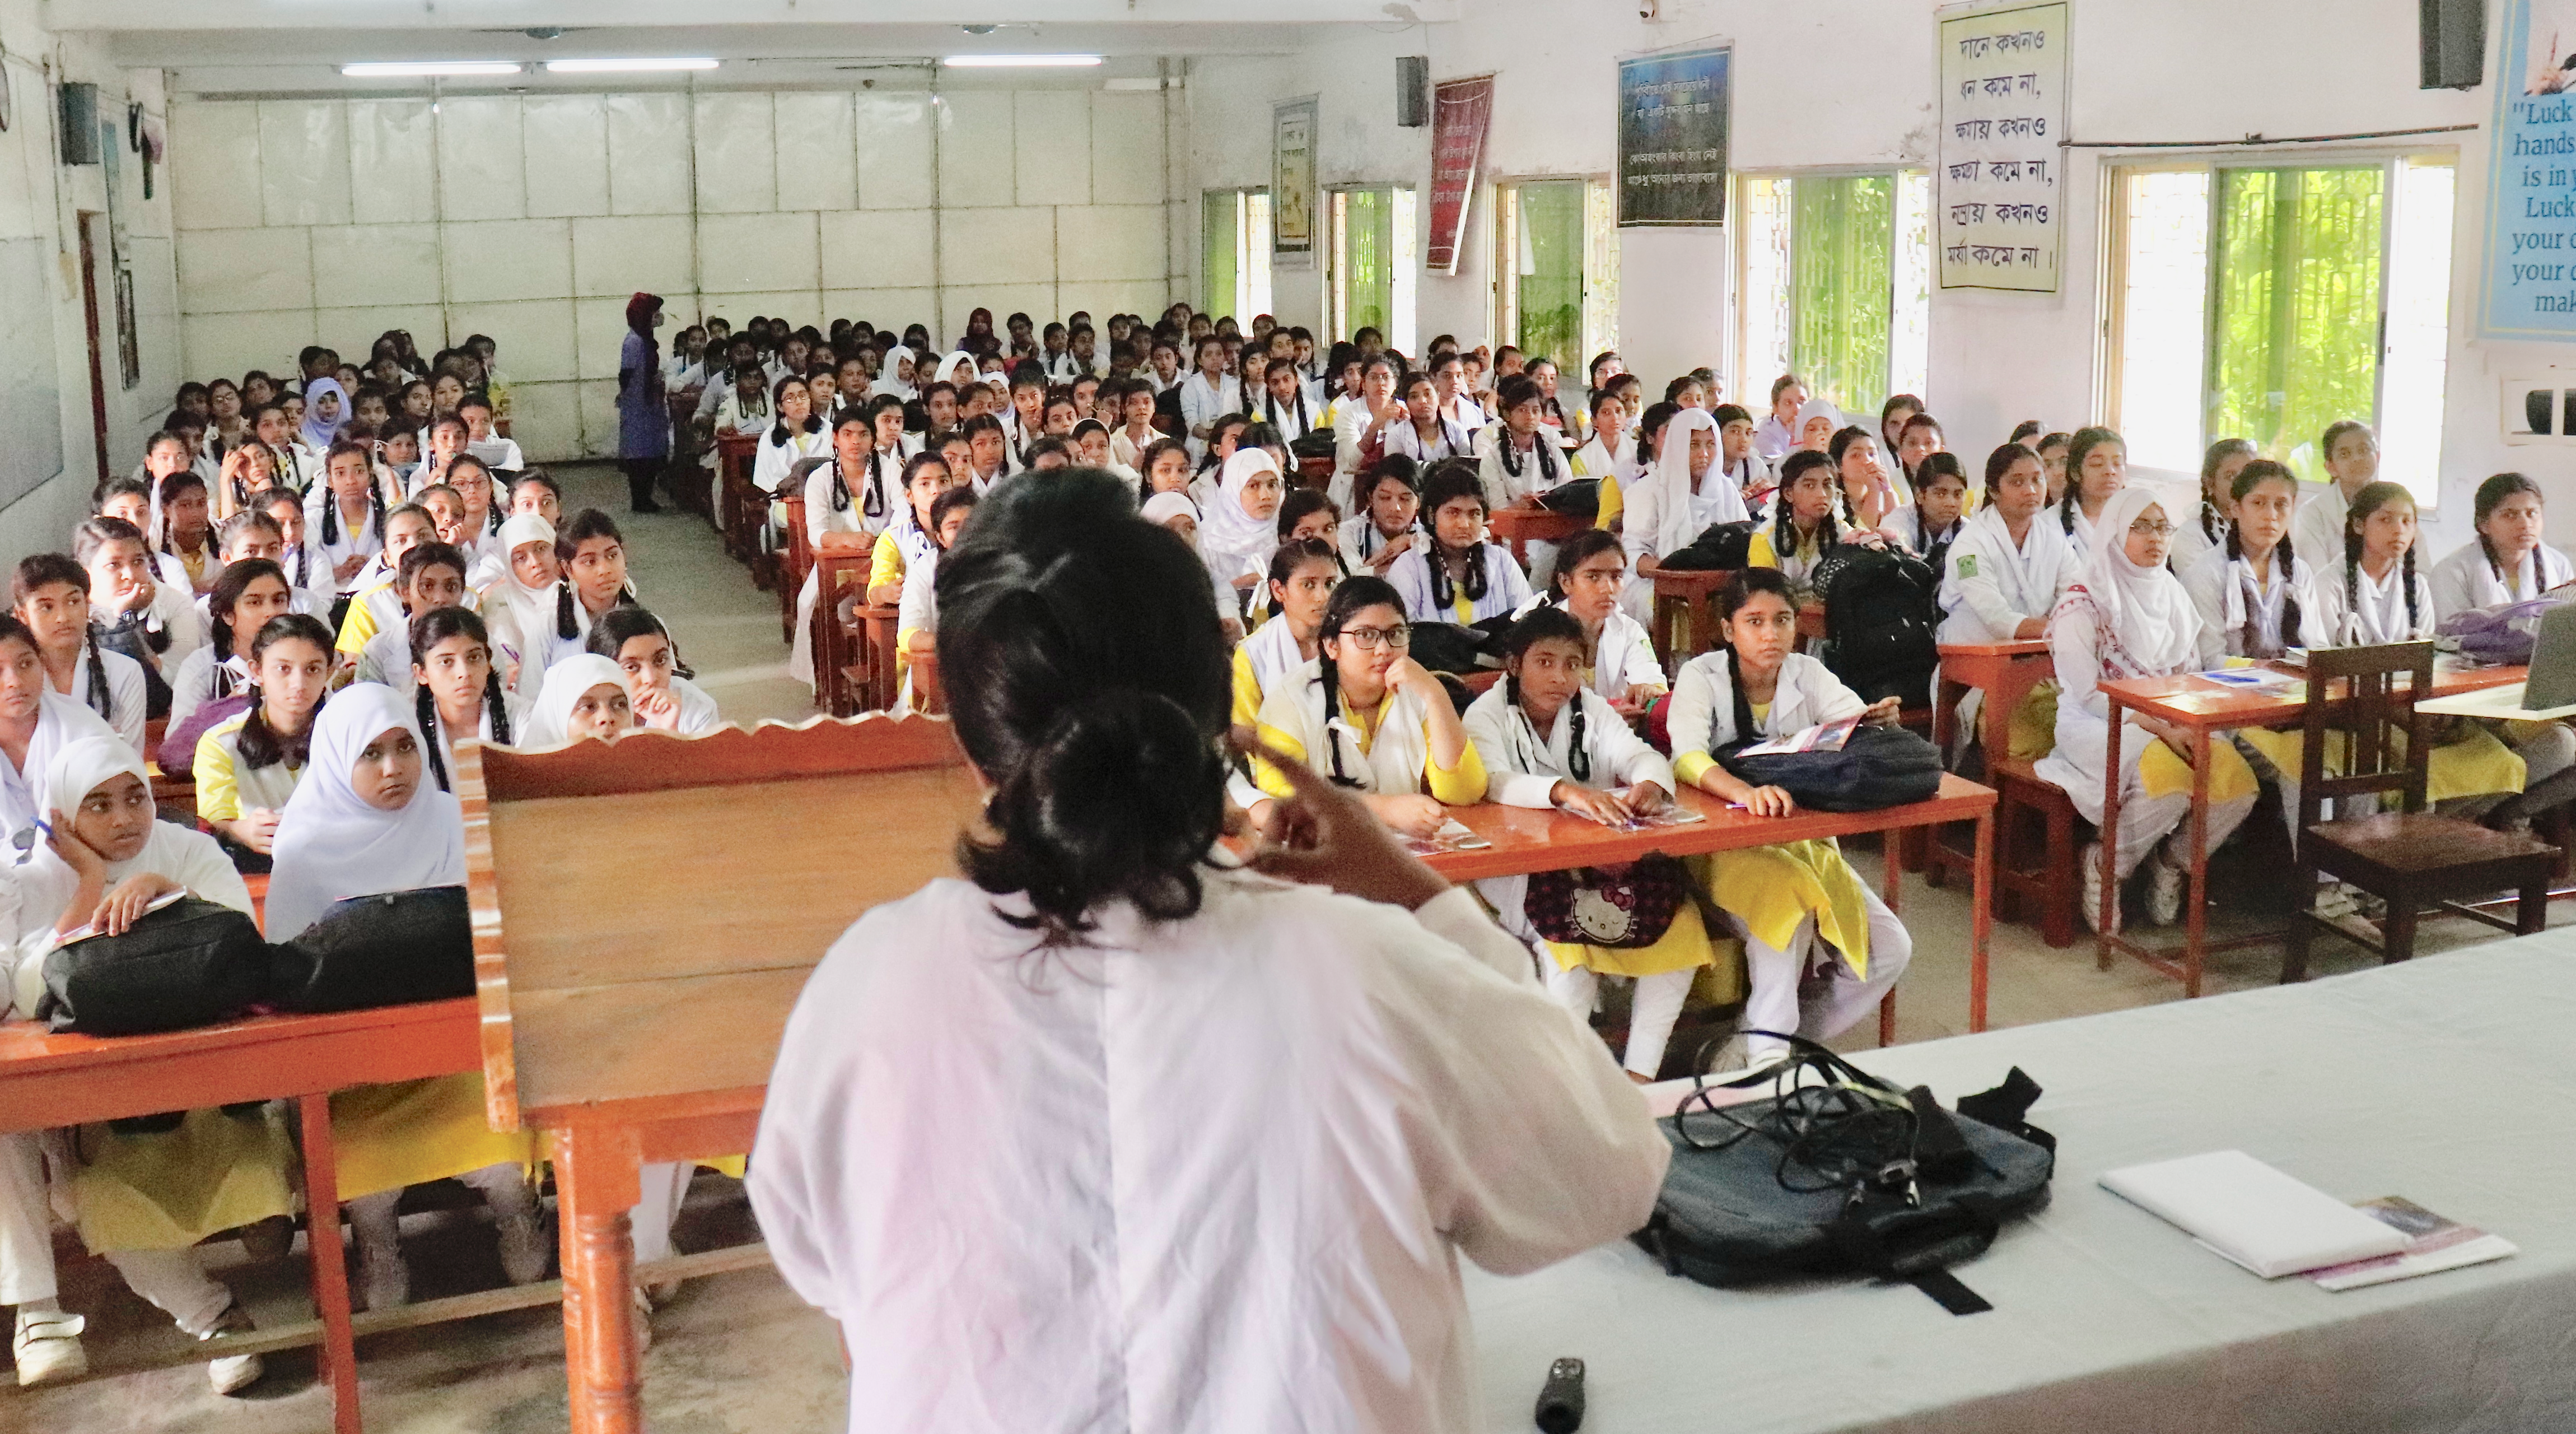 Launch of first school-based orientation in palliative care, Bangladesh